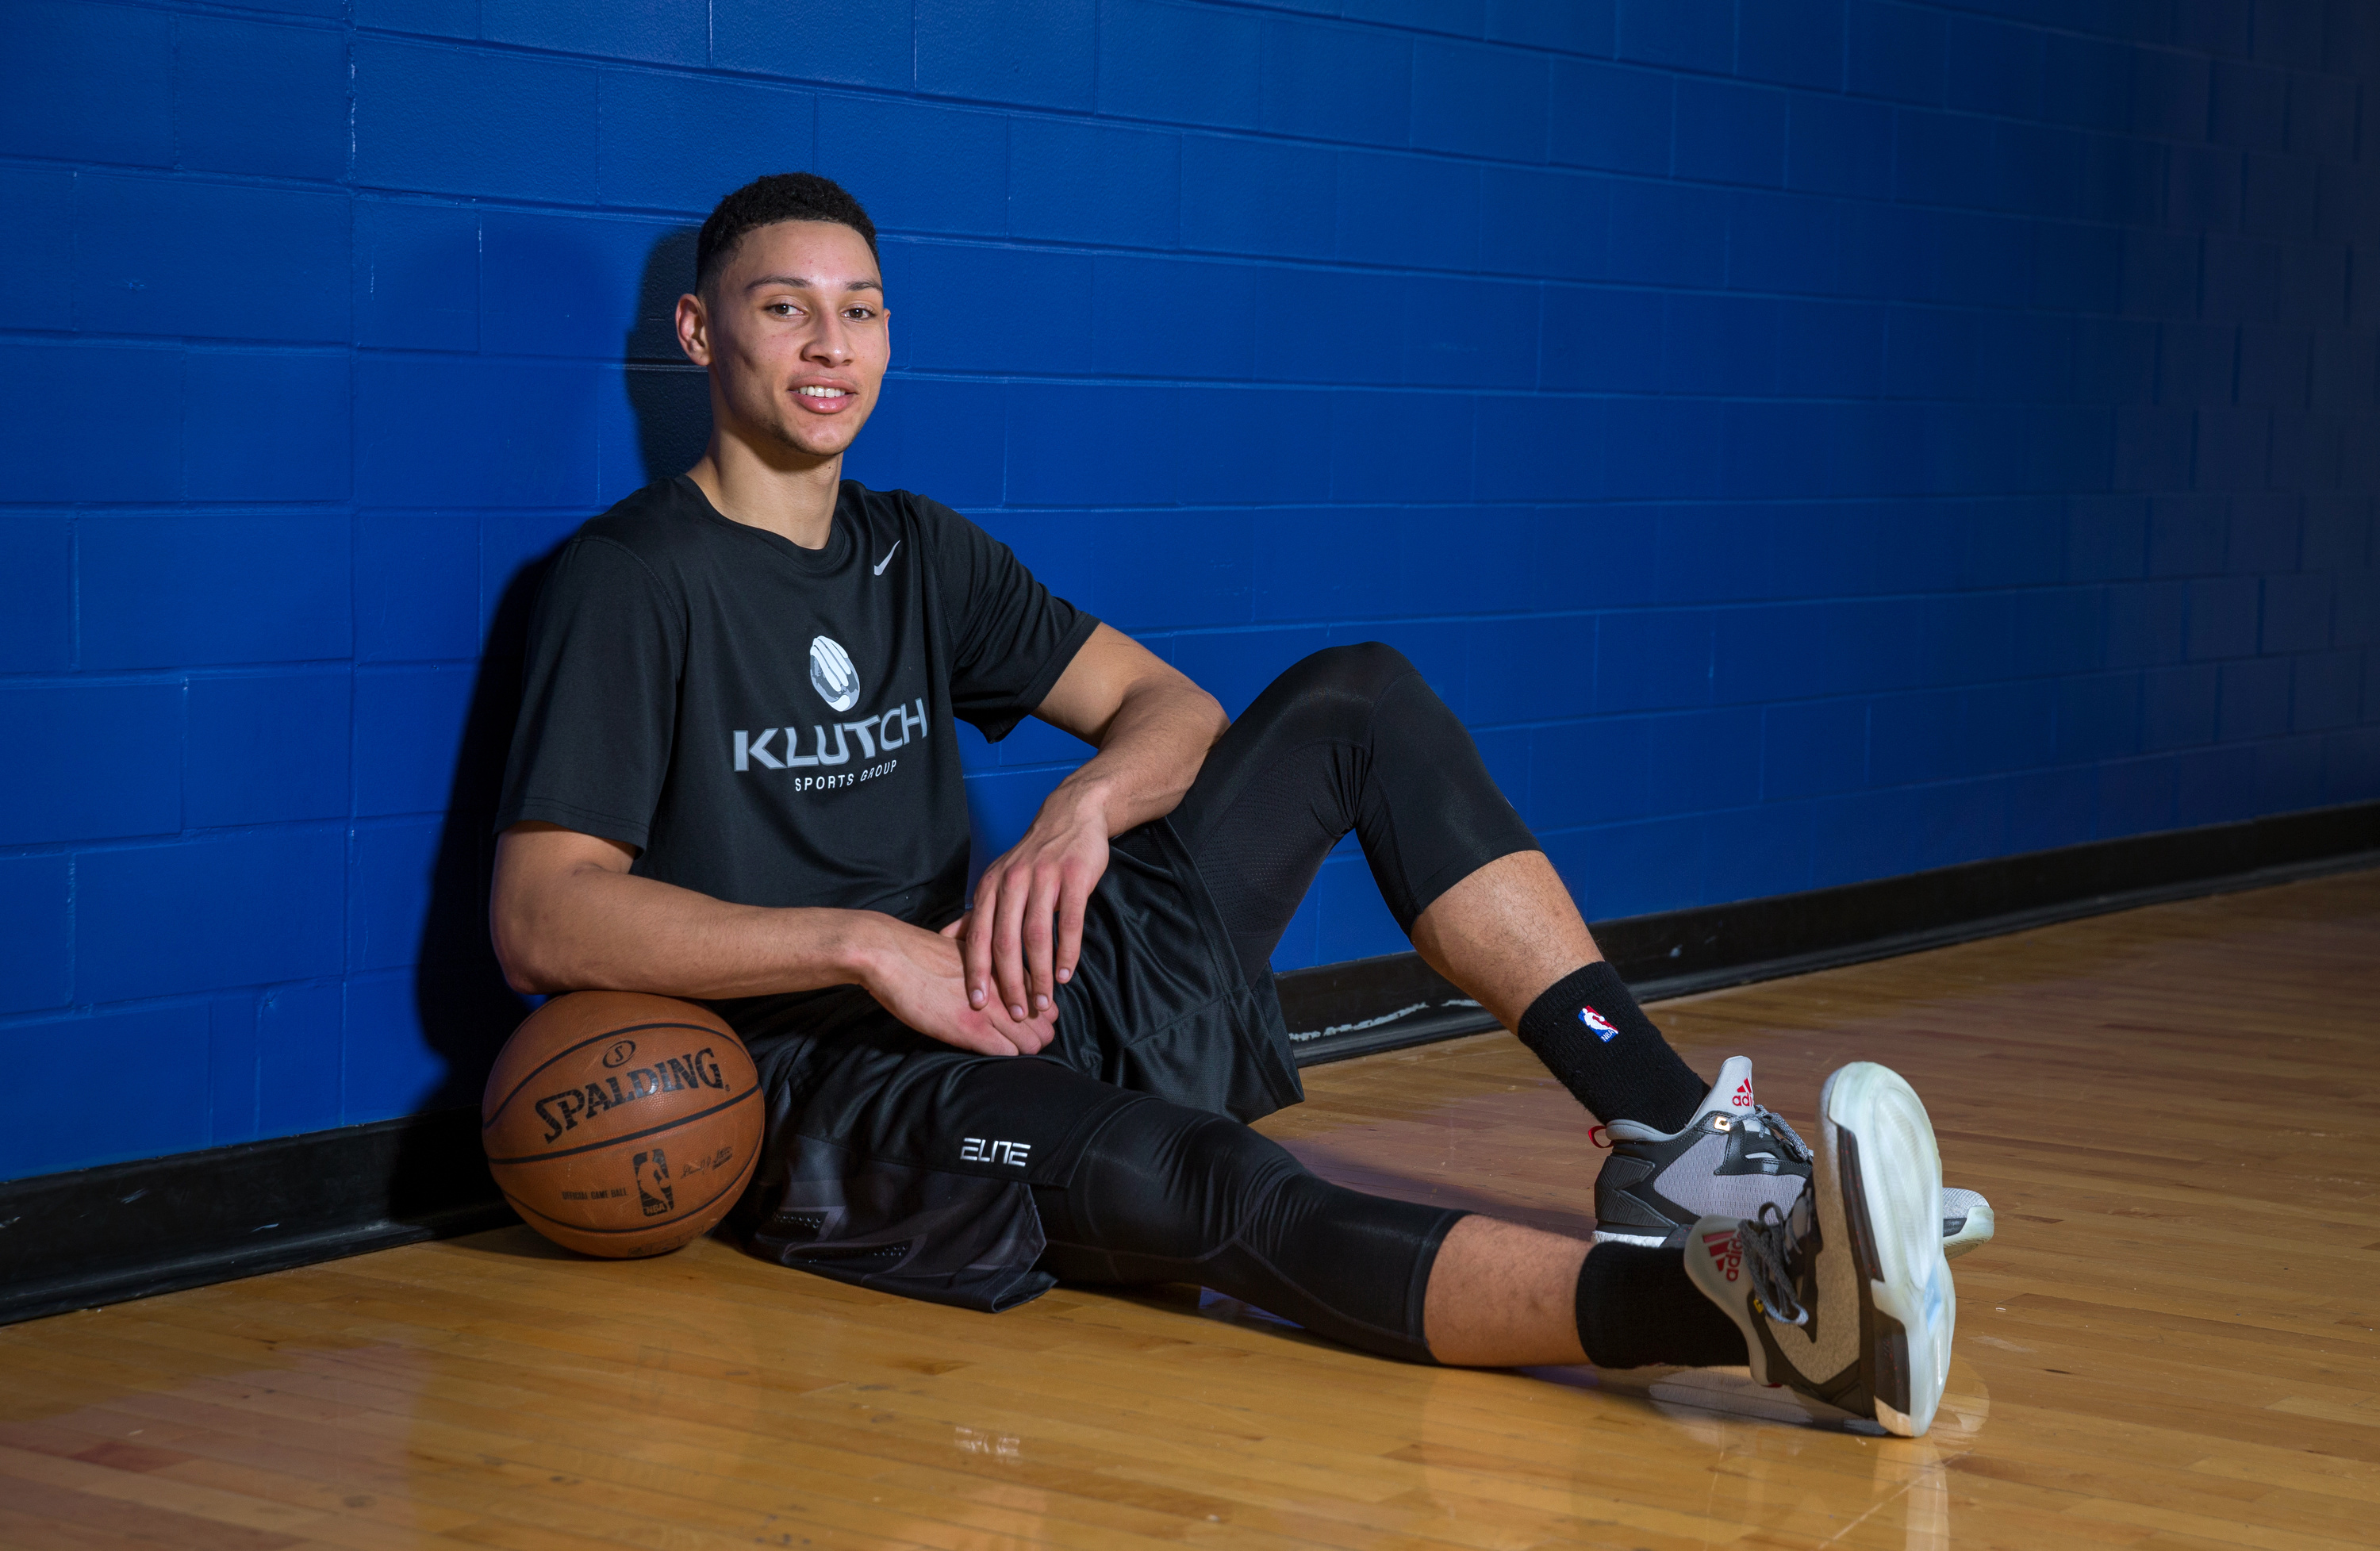 CLEVELAND, OH - MAY 19: Draft Prospect Ben Simmons poses for a photo during a workout at the Veale Center at Case Western Reserve University on May 19, 2016 in Cleveland, Ohio. (Photo by Nathaniel S. Butler/NBAE via Getty Images)